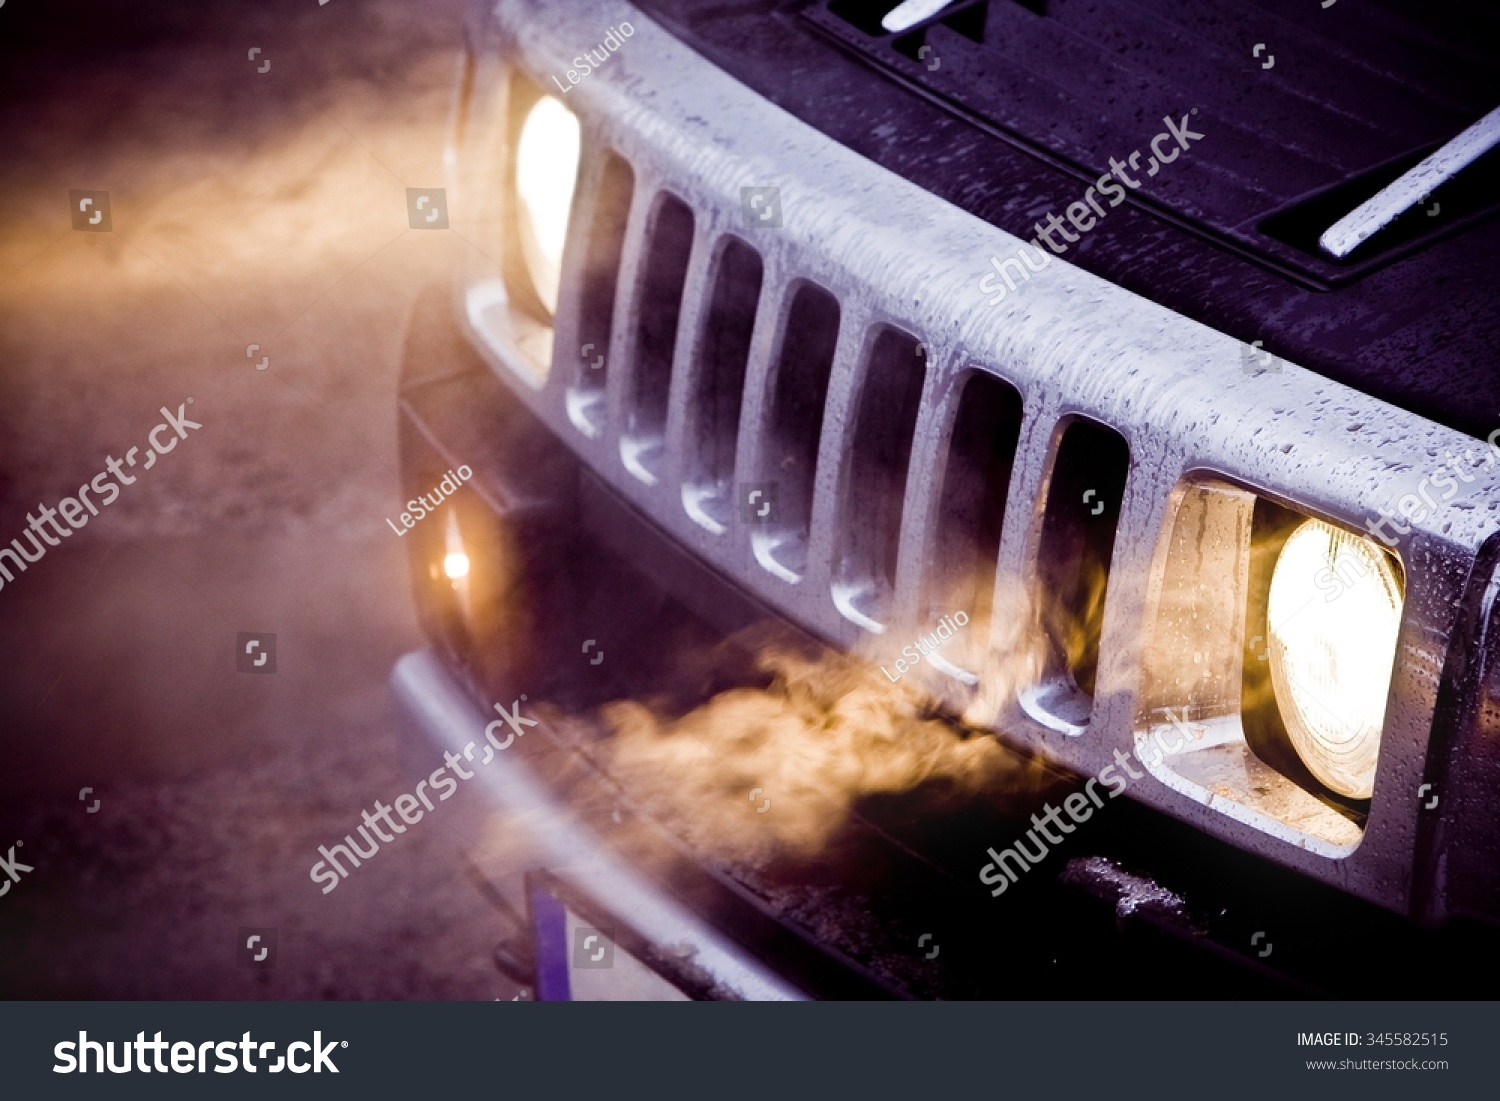 Headlights and chrome grille of a big powerful American SUV Hummer H2. Fog in the headlights of a black expensive off road car. Bad fuel milage or economy #345582515